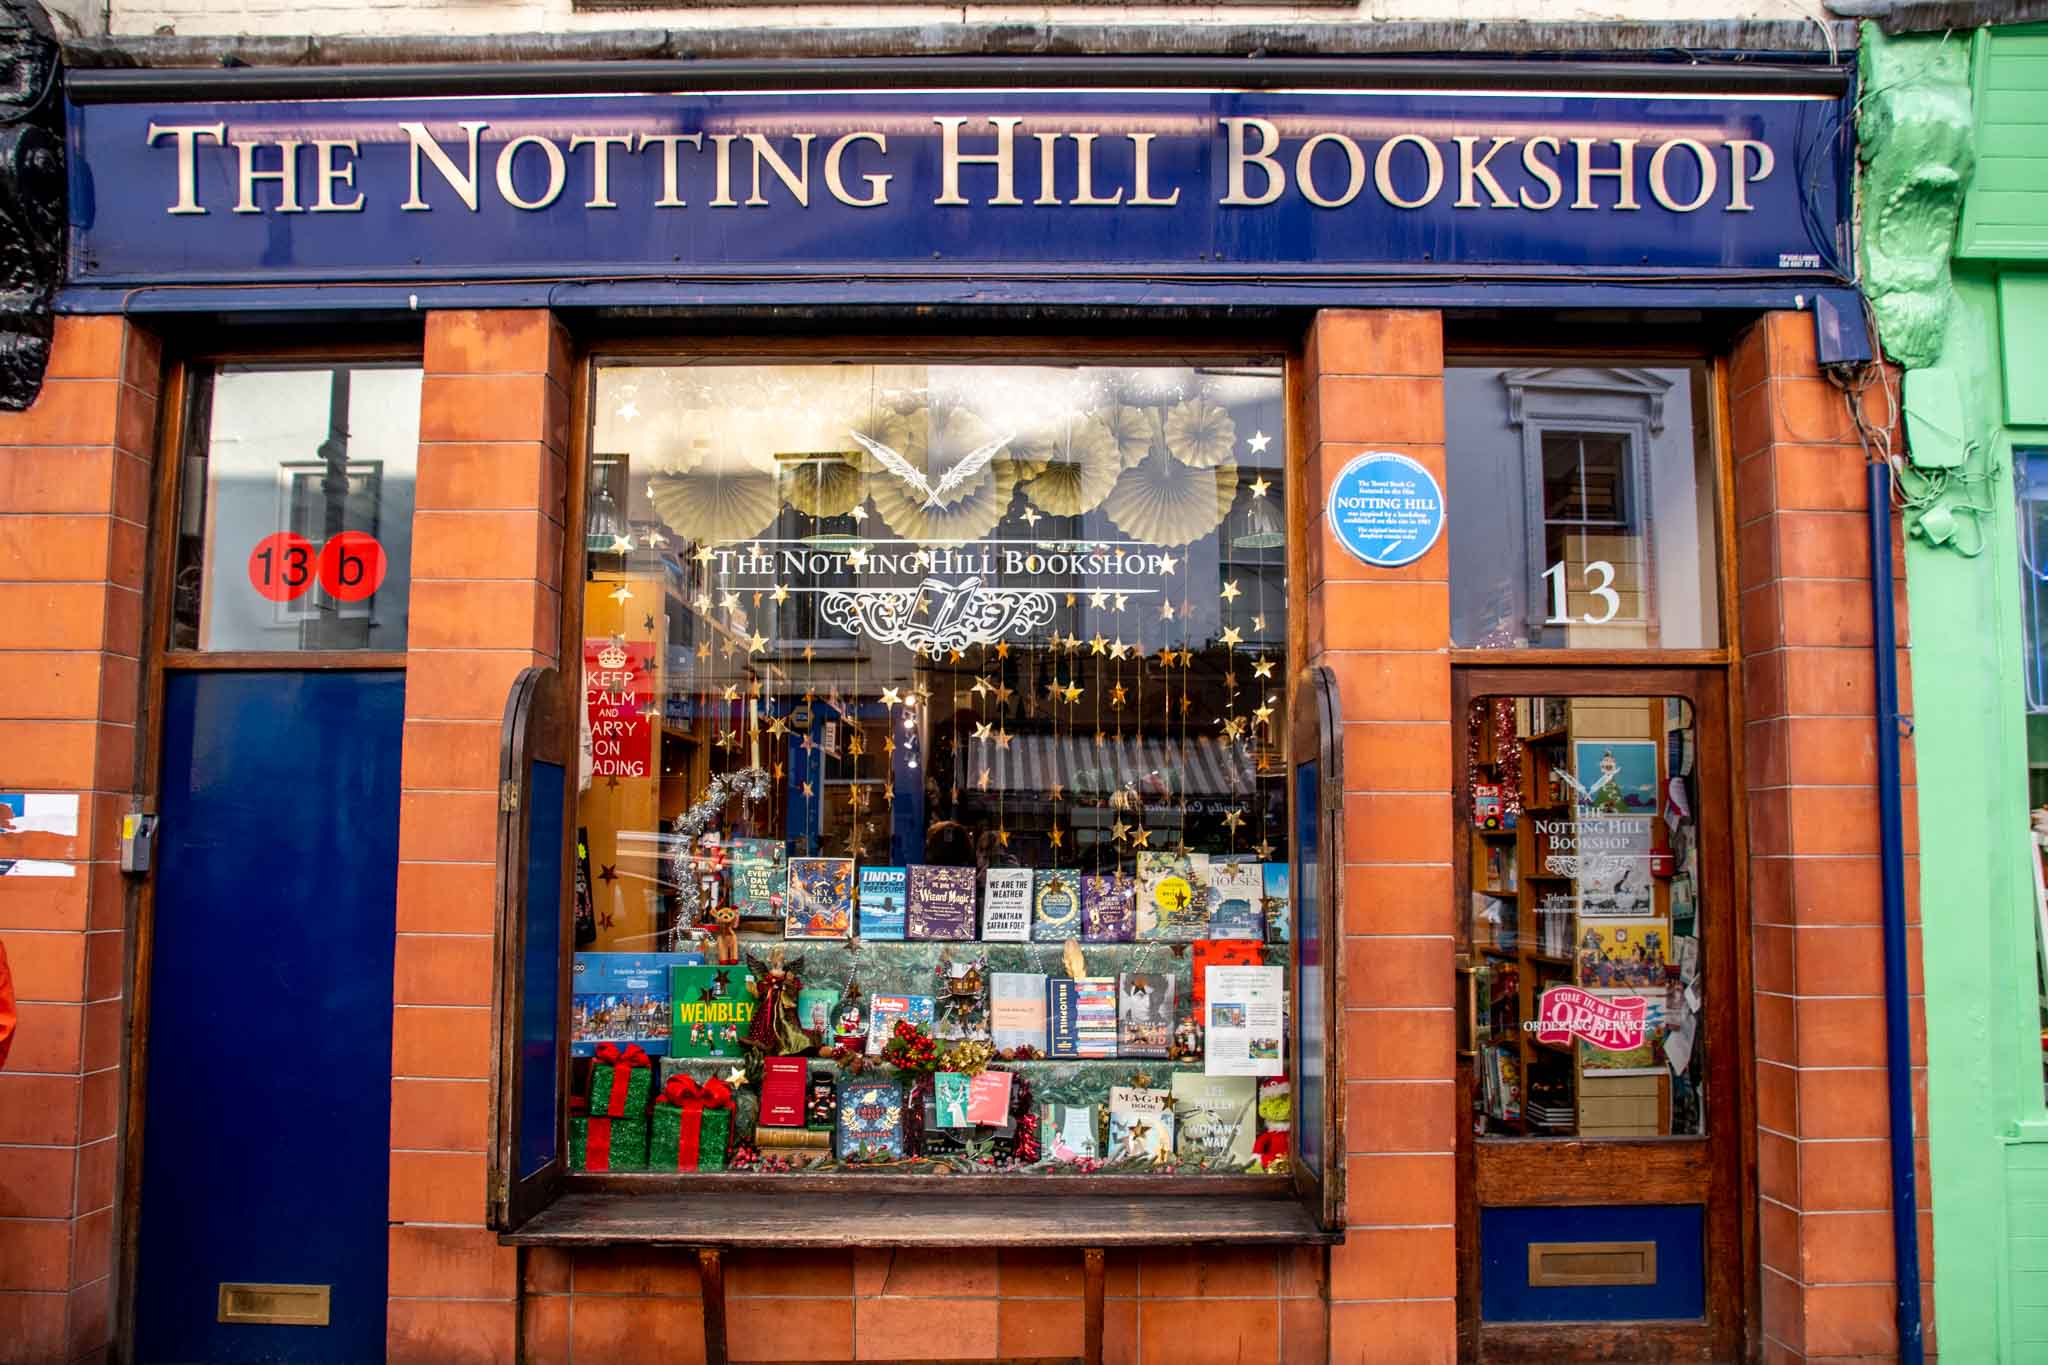 Brick exterior of Notting Hill Bookshop with a blue sign